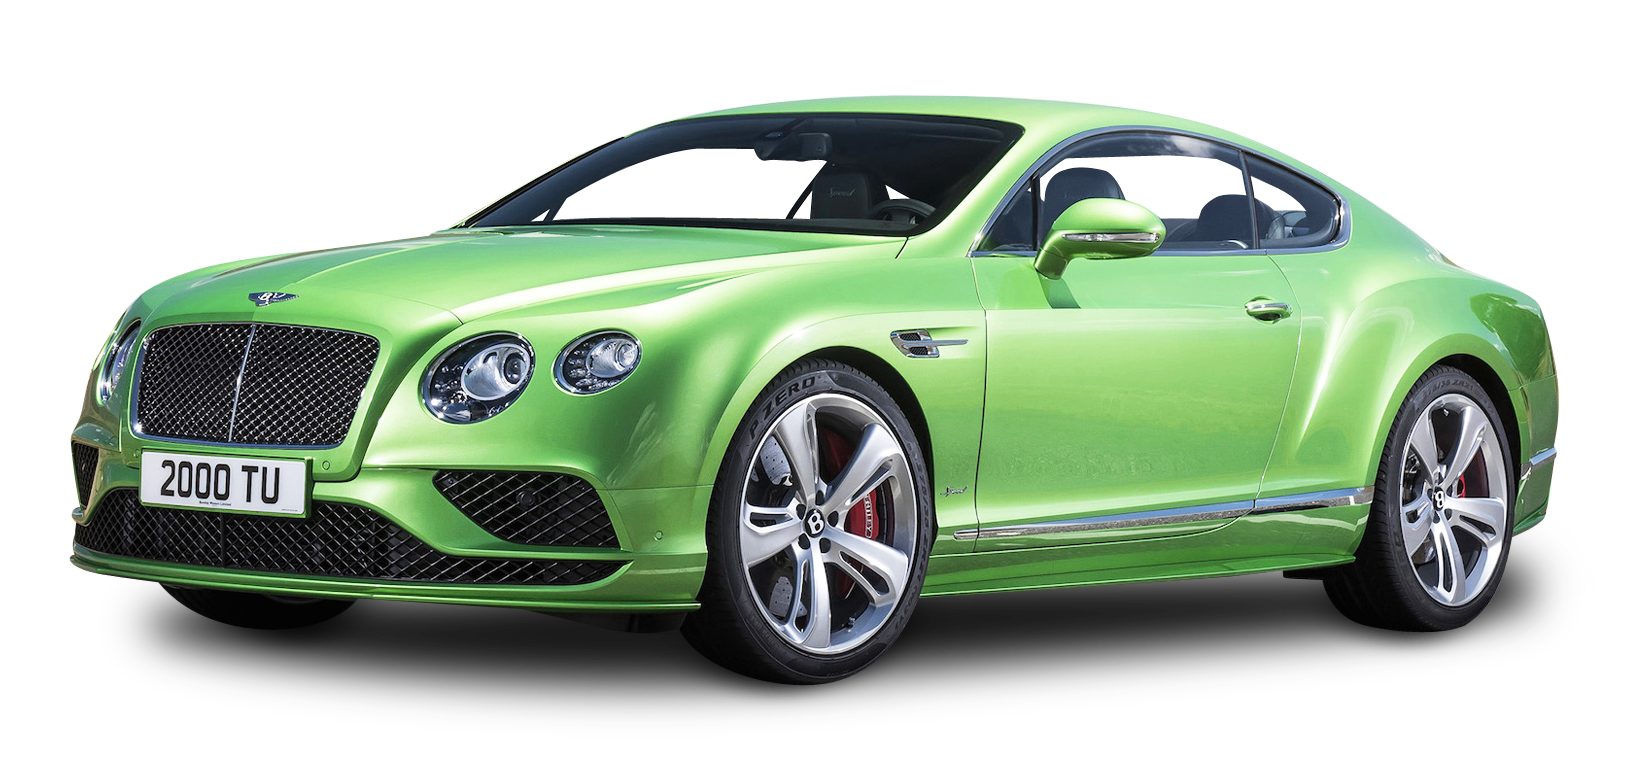 Green Bentley Continental GT4 Car PNG Image - Bentley PNG